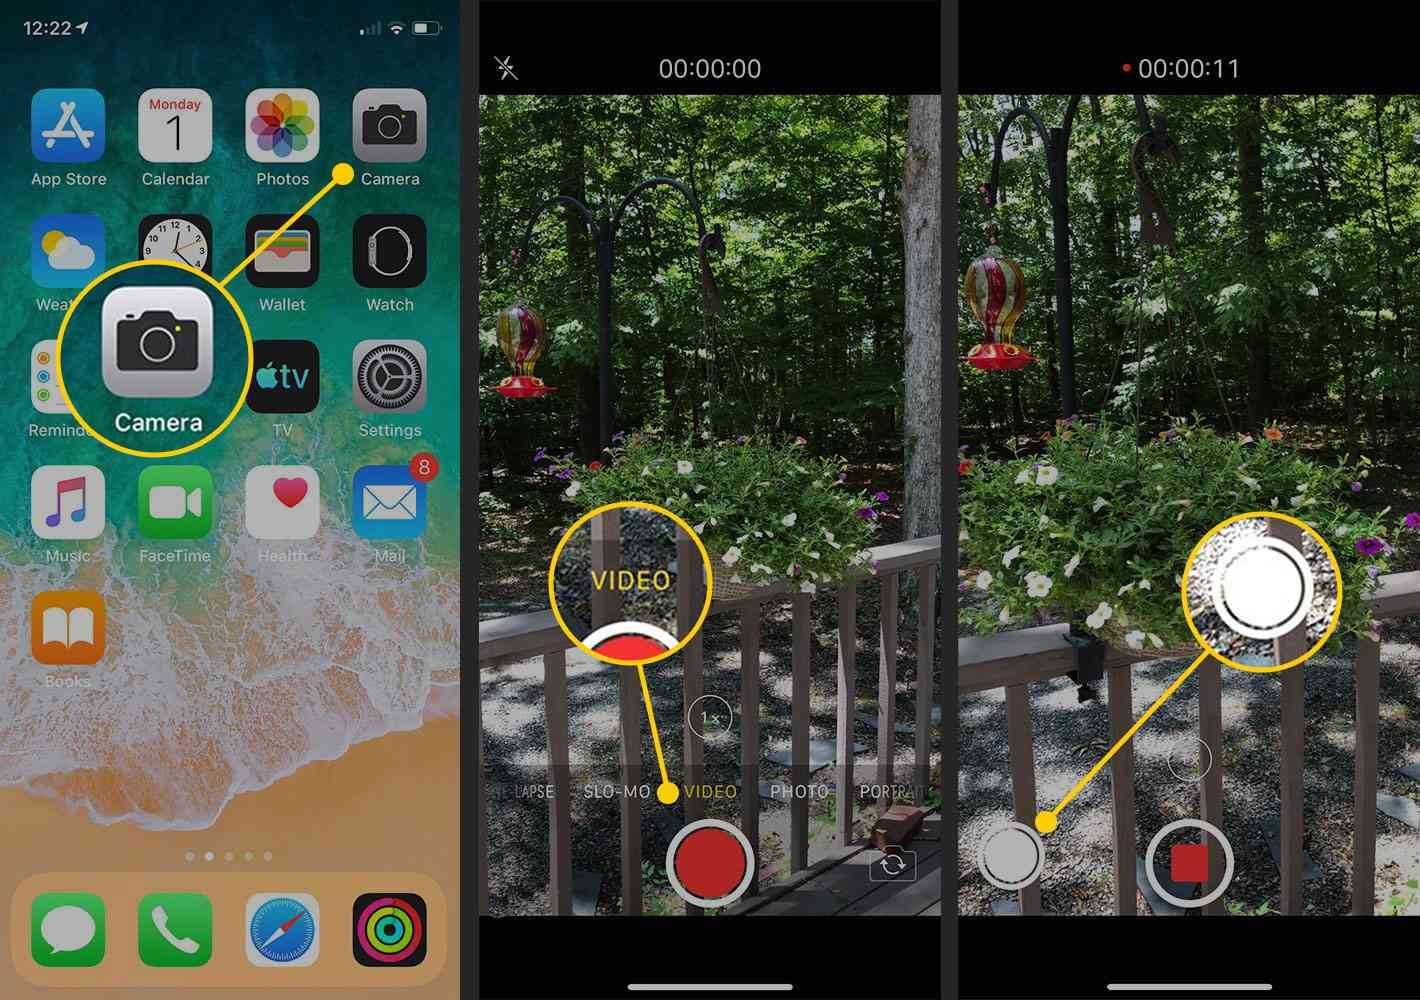 Top 10 iPhone Tips & Tricks You Should Know 11